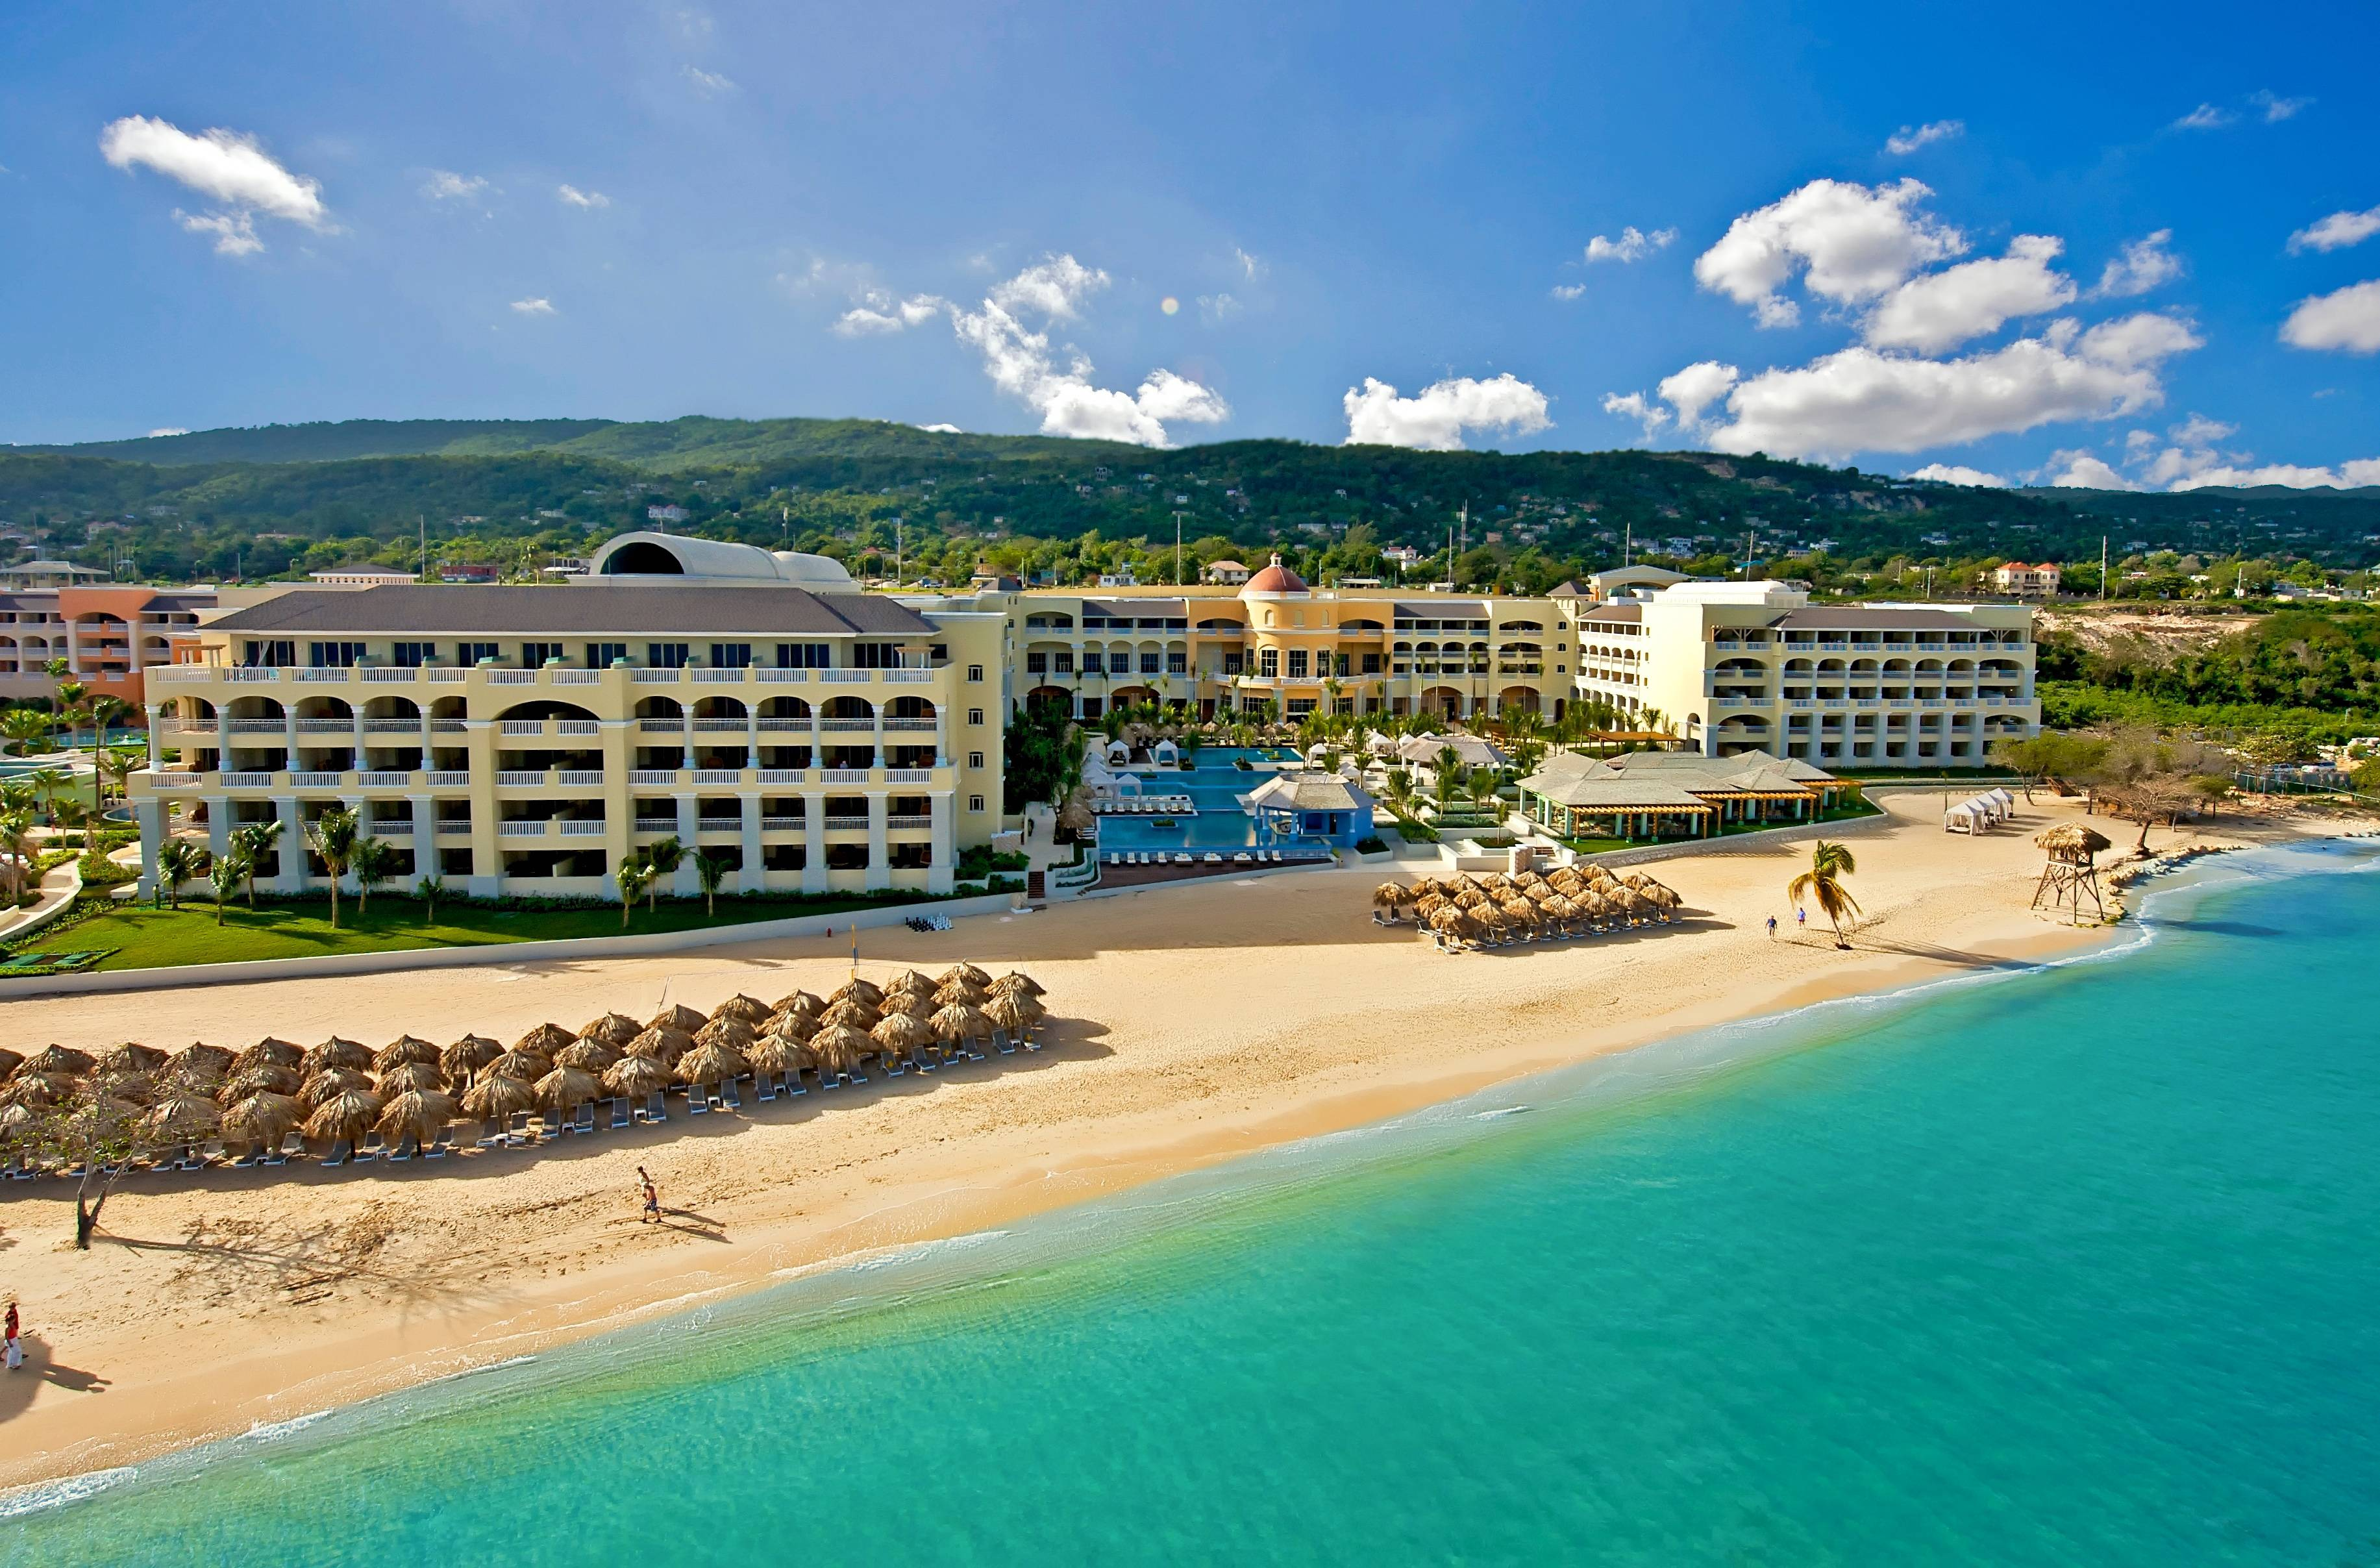 Hotel Carmen Roses Enjoy An Ultra Luxury All Inclusive Stay At Iberostar